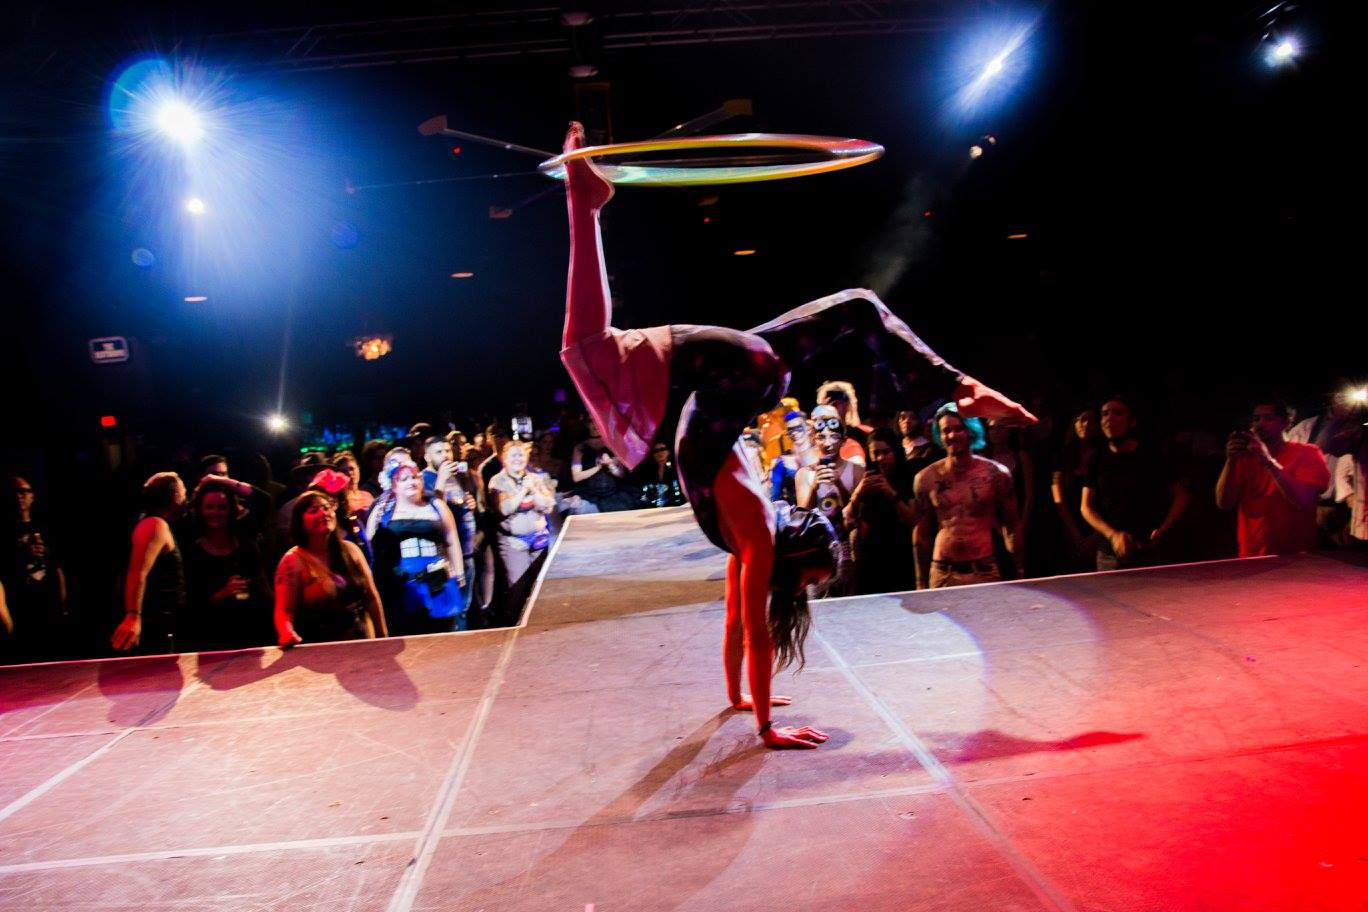 Acrobatic Hoop Dance at the Cosplay Ball 2016 in Phoenix. Presented by The Festival Fashion Show and Scorpius Dance.